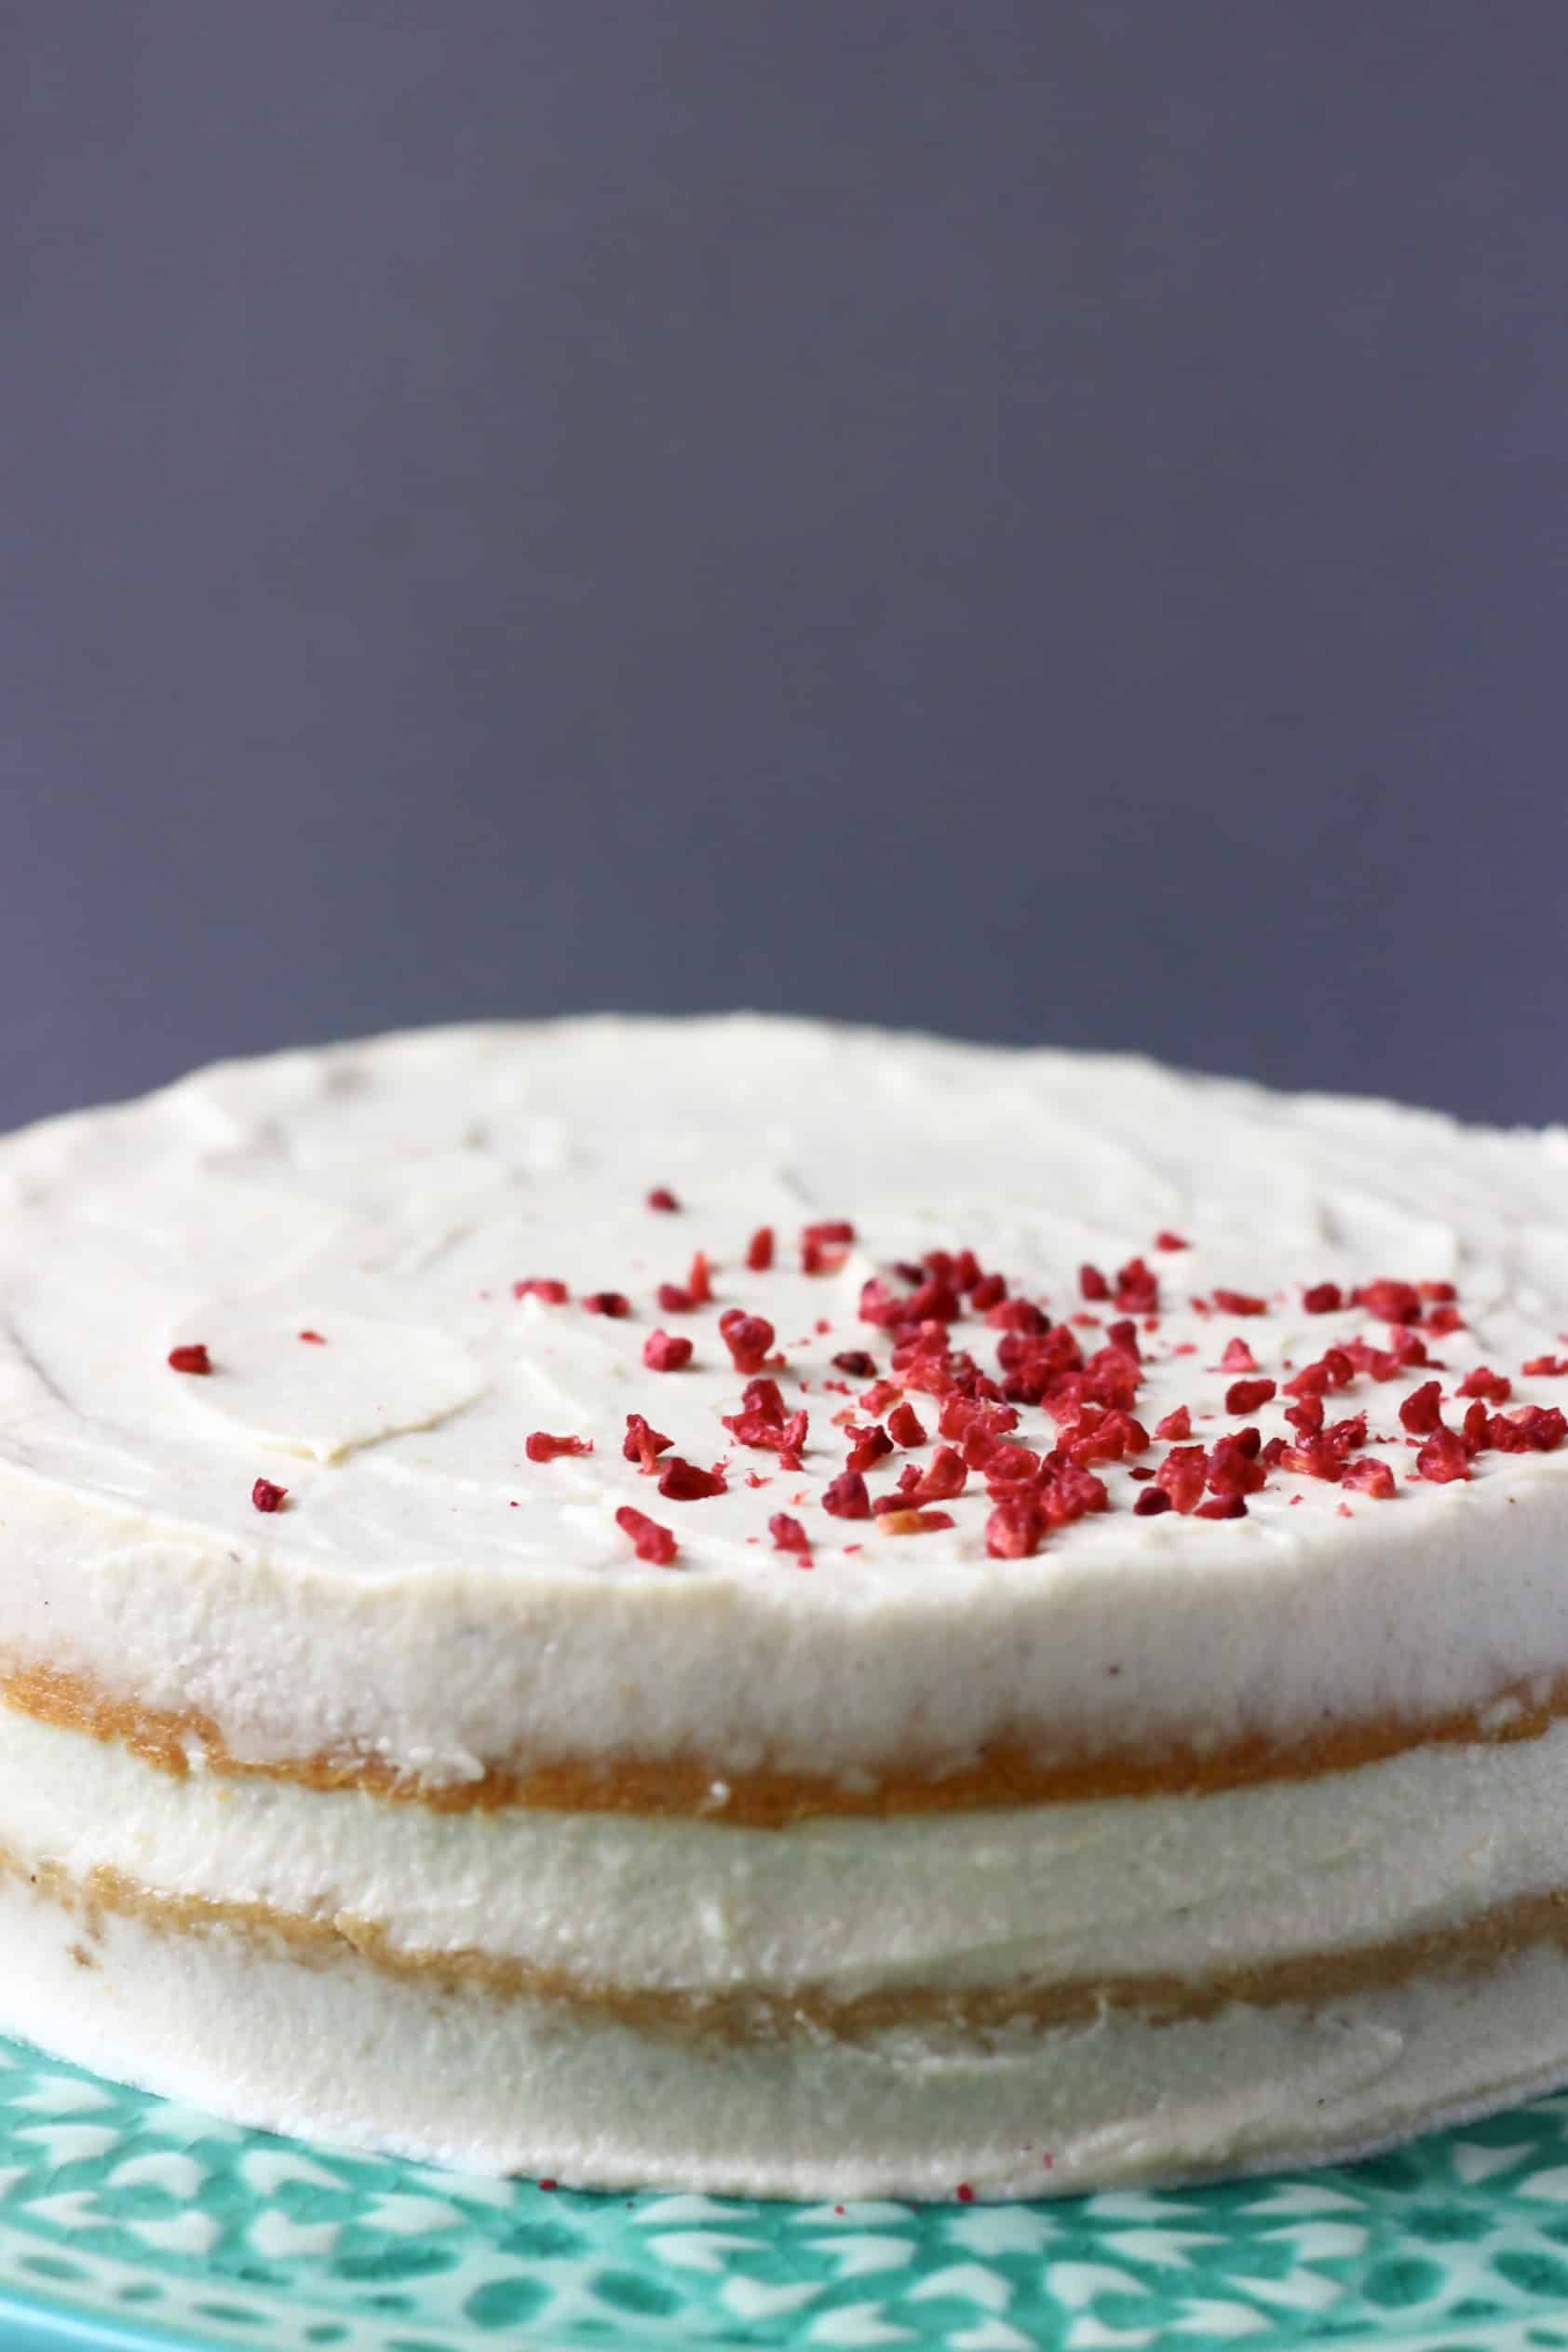 Gluten-free vegan vanilla cake covered with white frosting topped with freeze-dried raspberries